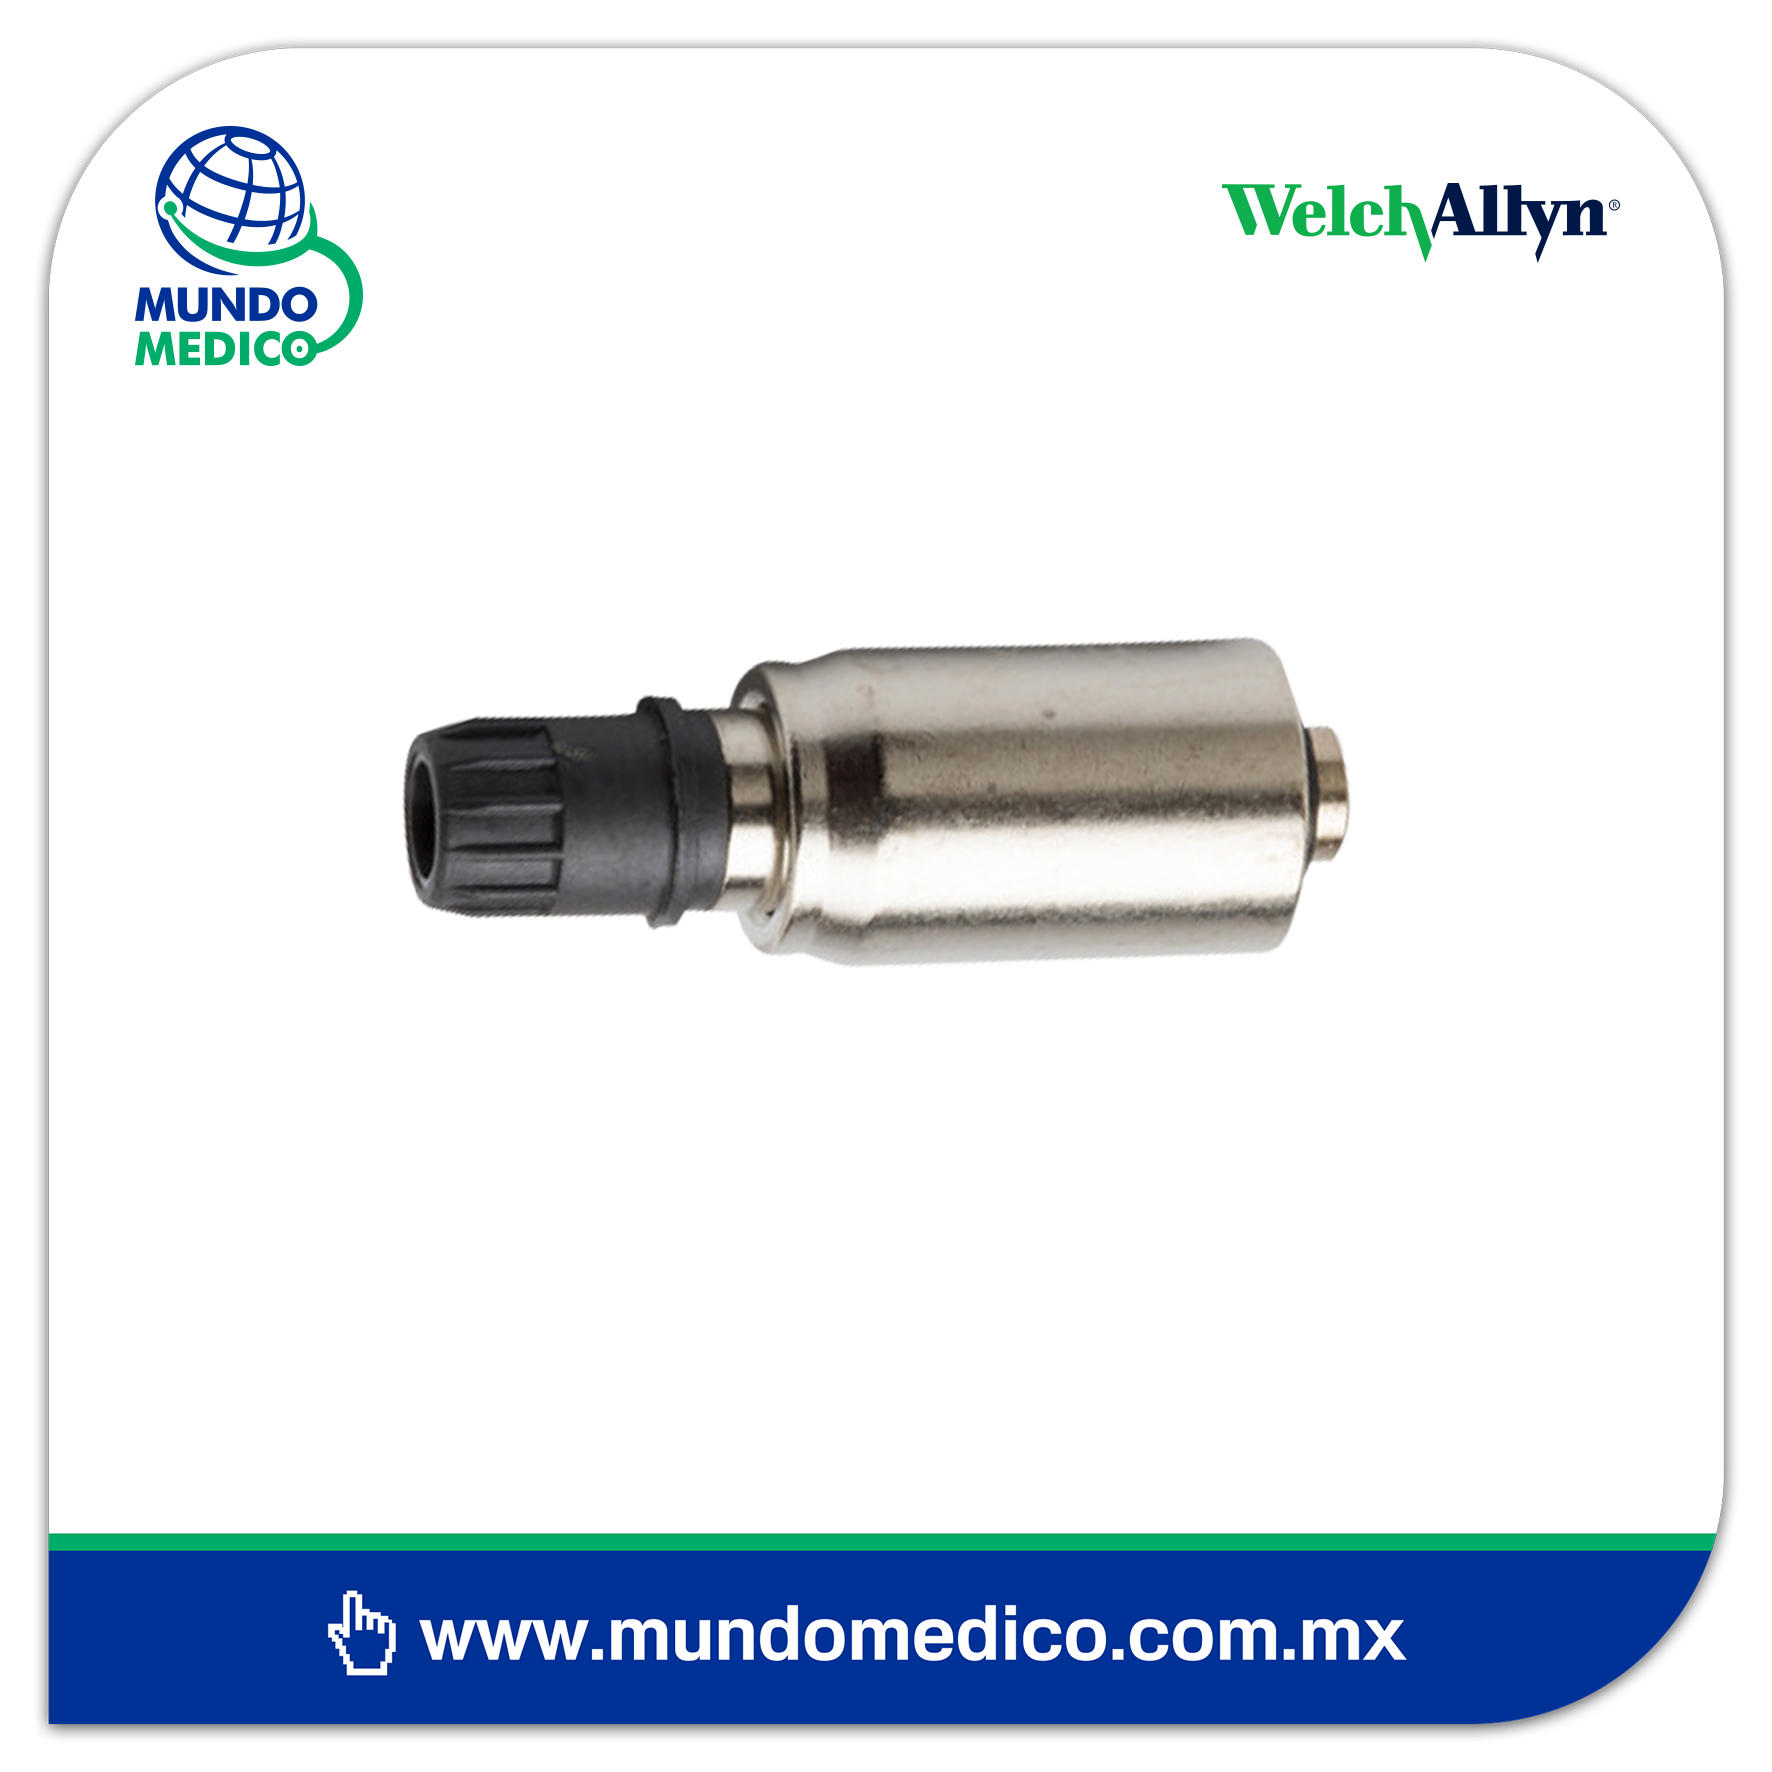 WA608125-501 Switch con Foco Gold para Mango de Laringoscopio de 2.5v y 3.5v Welch Allyn